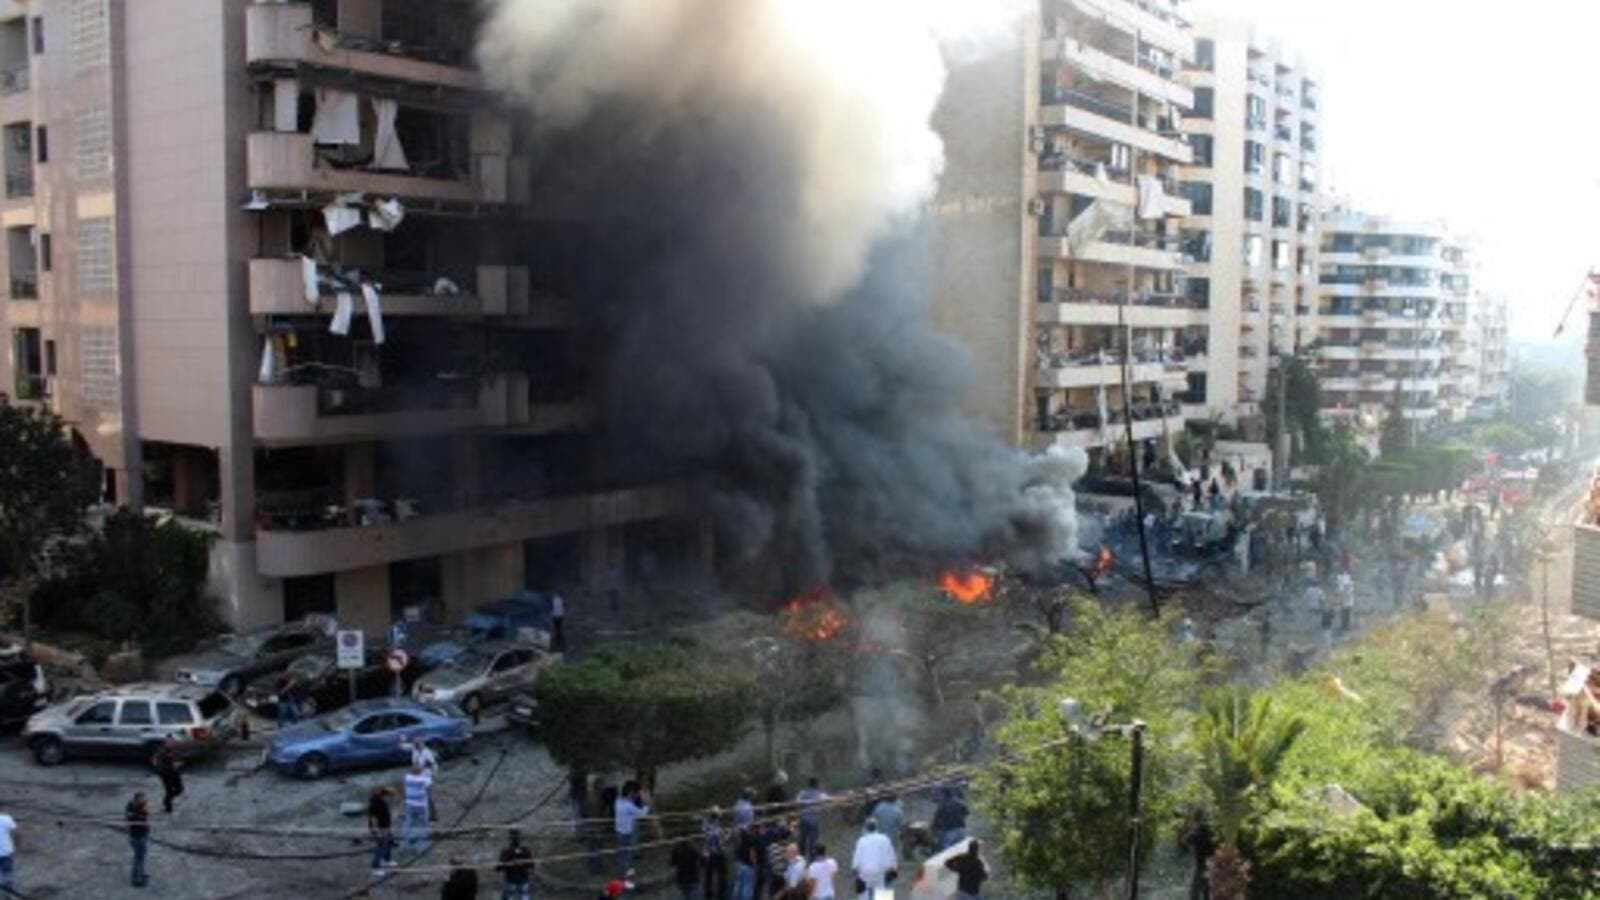 Flames rise from the site of a blast in Bir Hassan neighbourhood in the southern Beirut on November 19, 2013. At least 22 people were killed in a double bomb attack outside the Iranian embassy in Beirut. Is Lebanon turning into the new Iraq? (AFP)